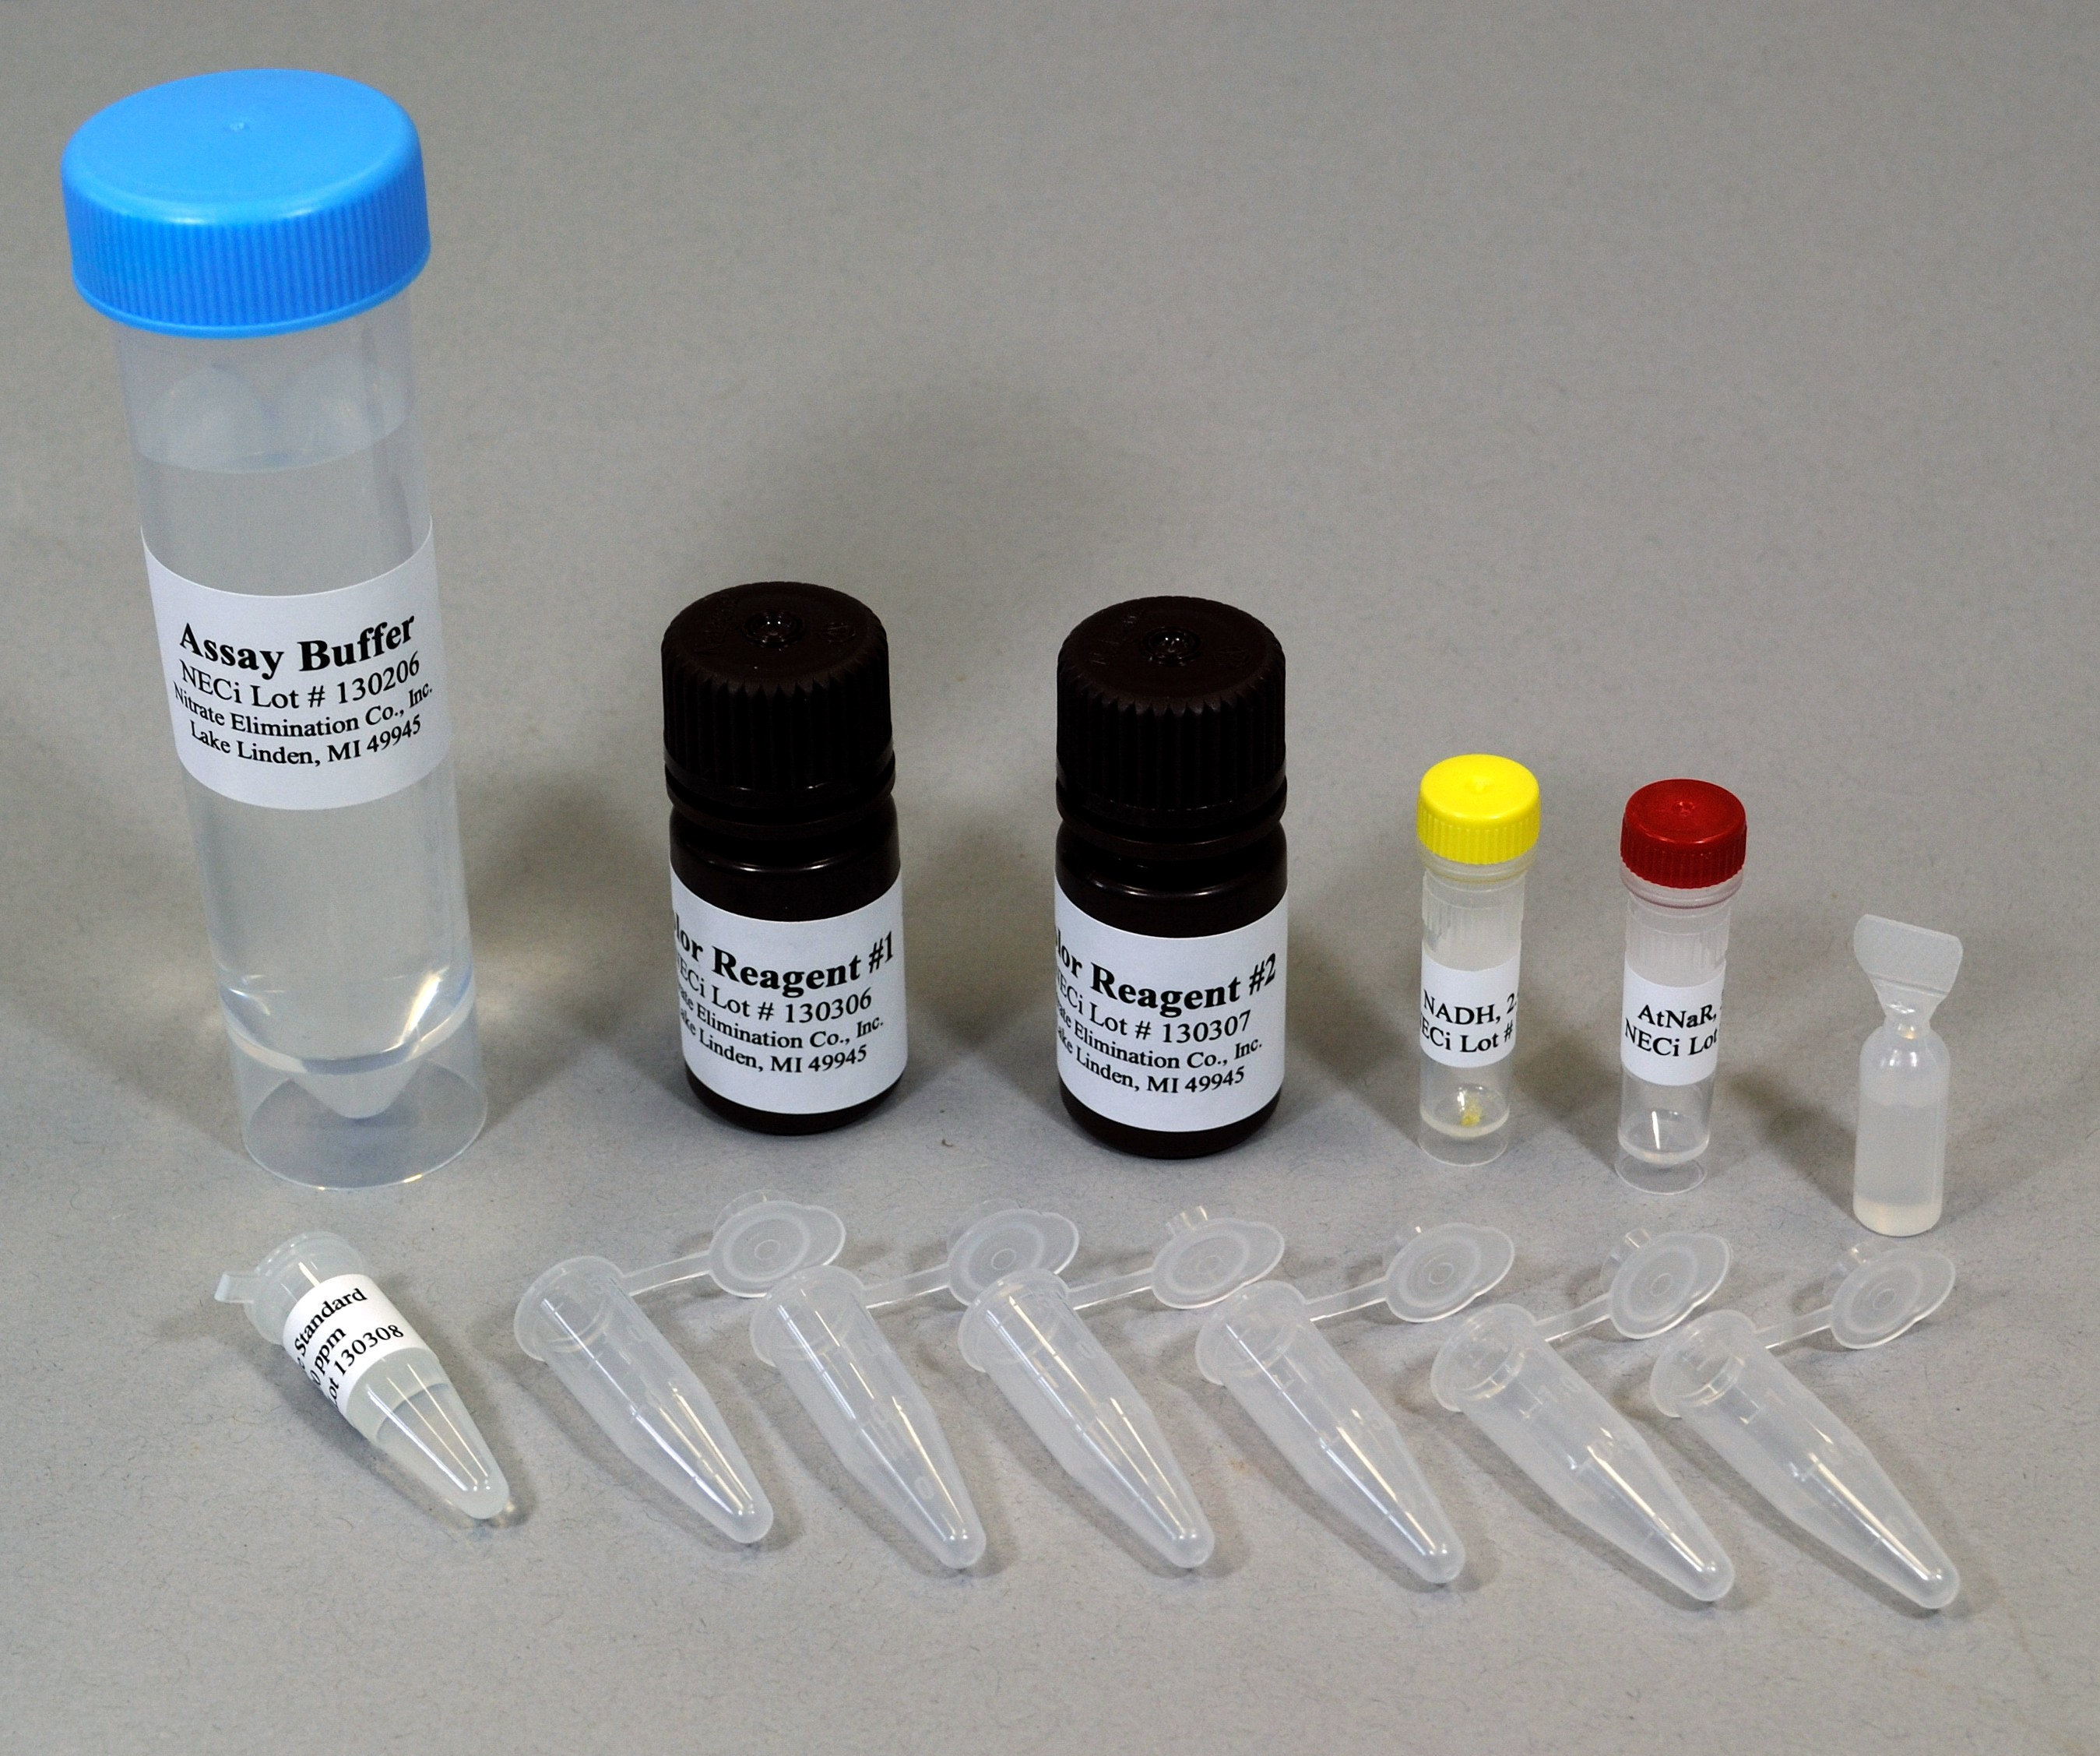 Test Tube Nitrate Test Kit for 25 Samples